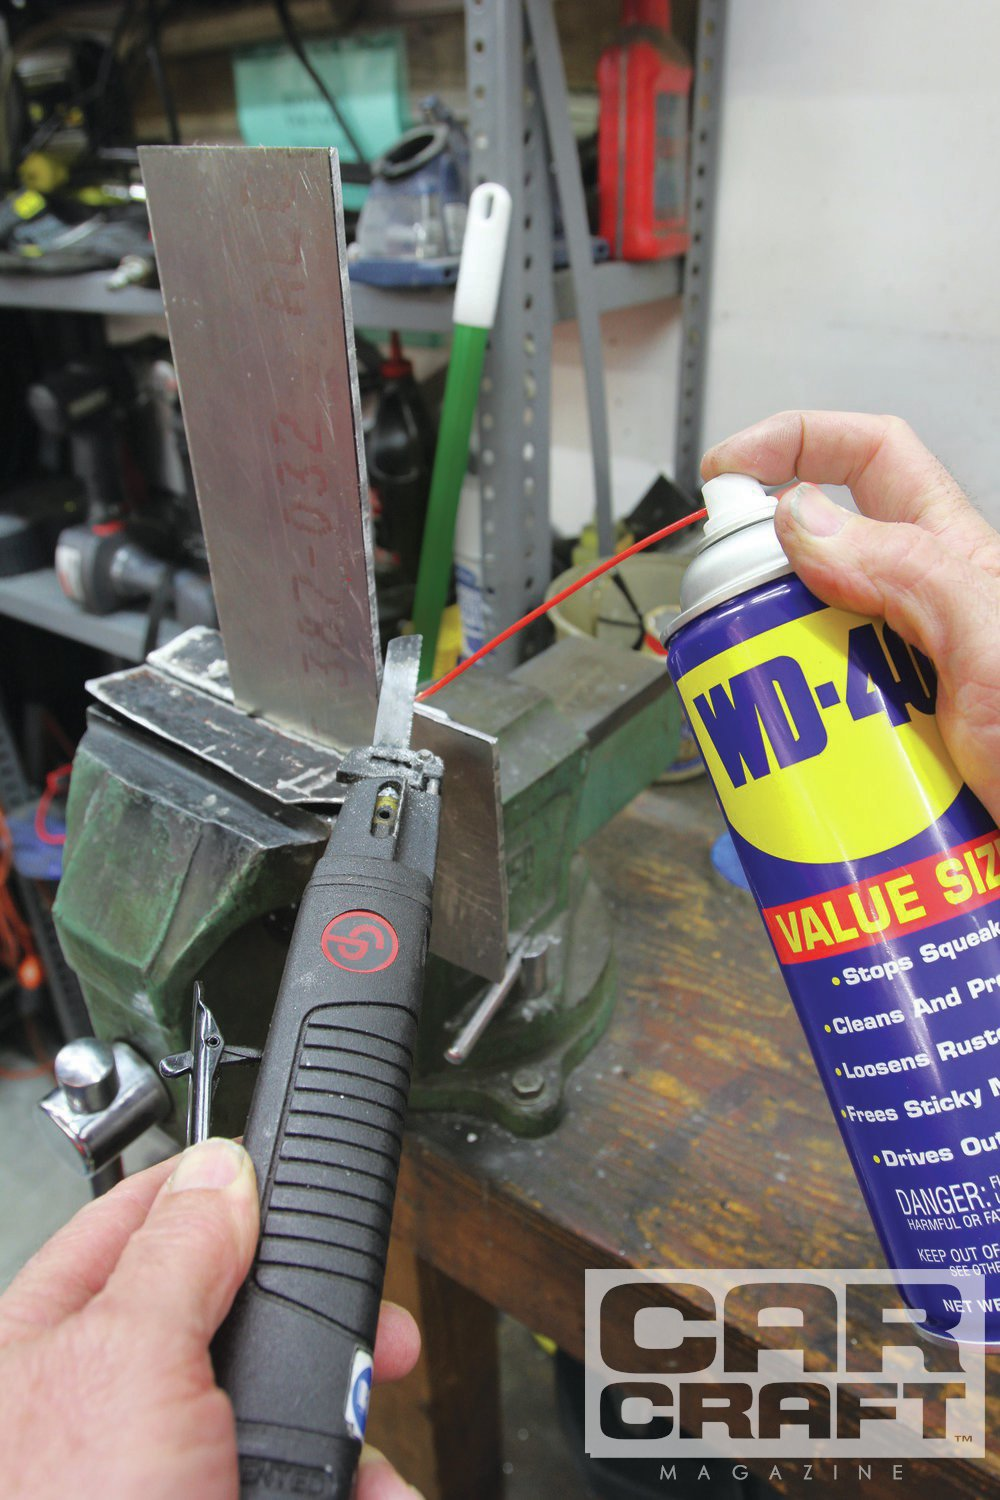 Aluminum is easy to cut, especially with a fine-tooth jigsaw blade, but the aluminum will quickly load up on the blade. Coat the blade with WD-40 or other lubricant and this will keep it free to cut long slices of aluminum plate.